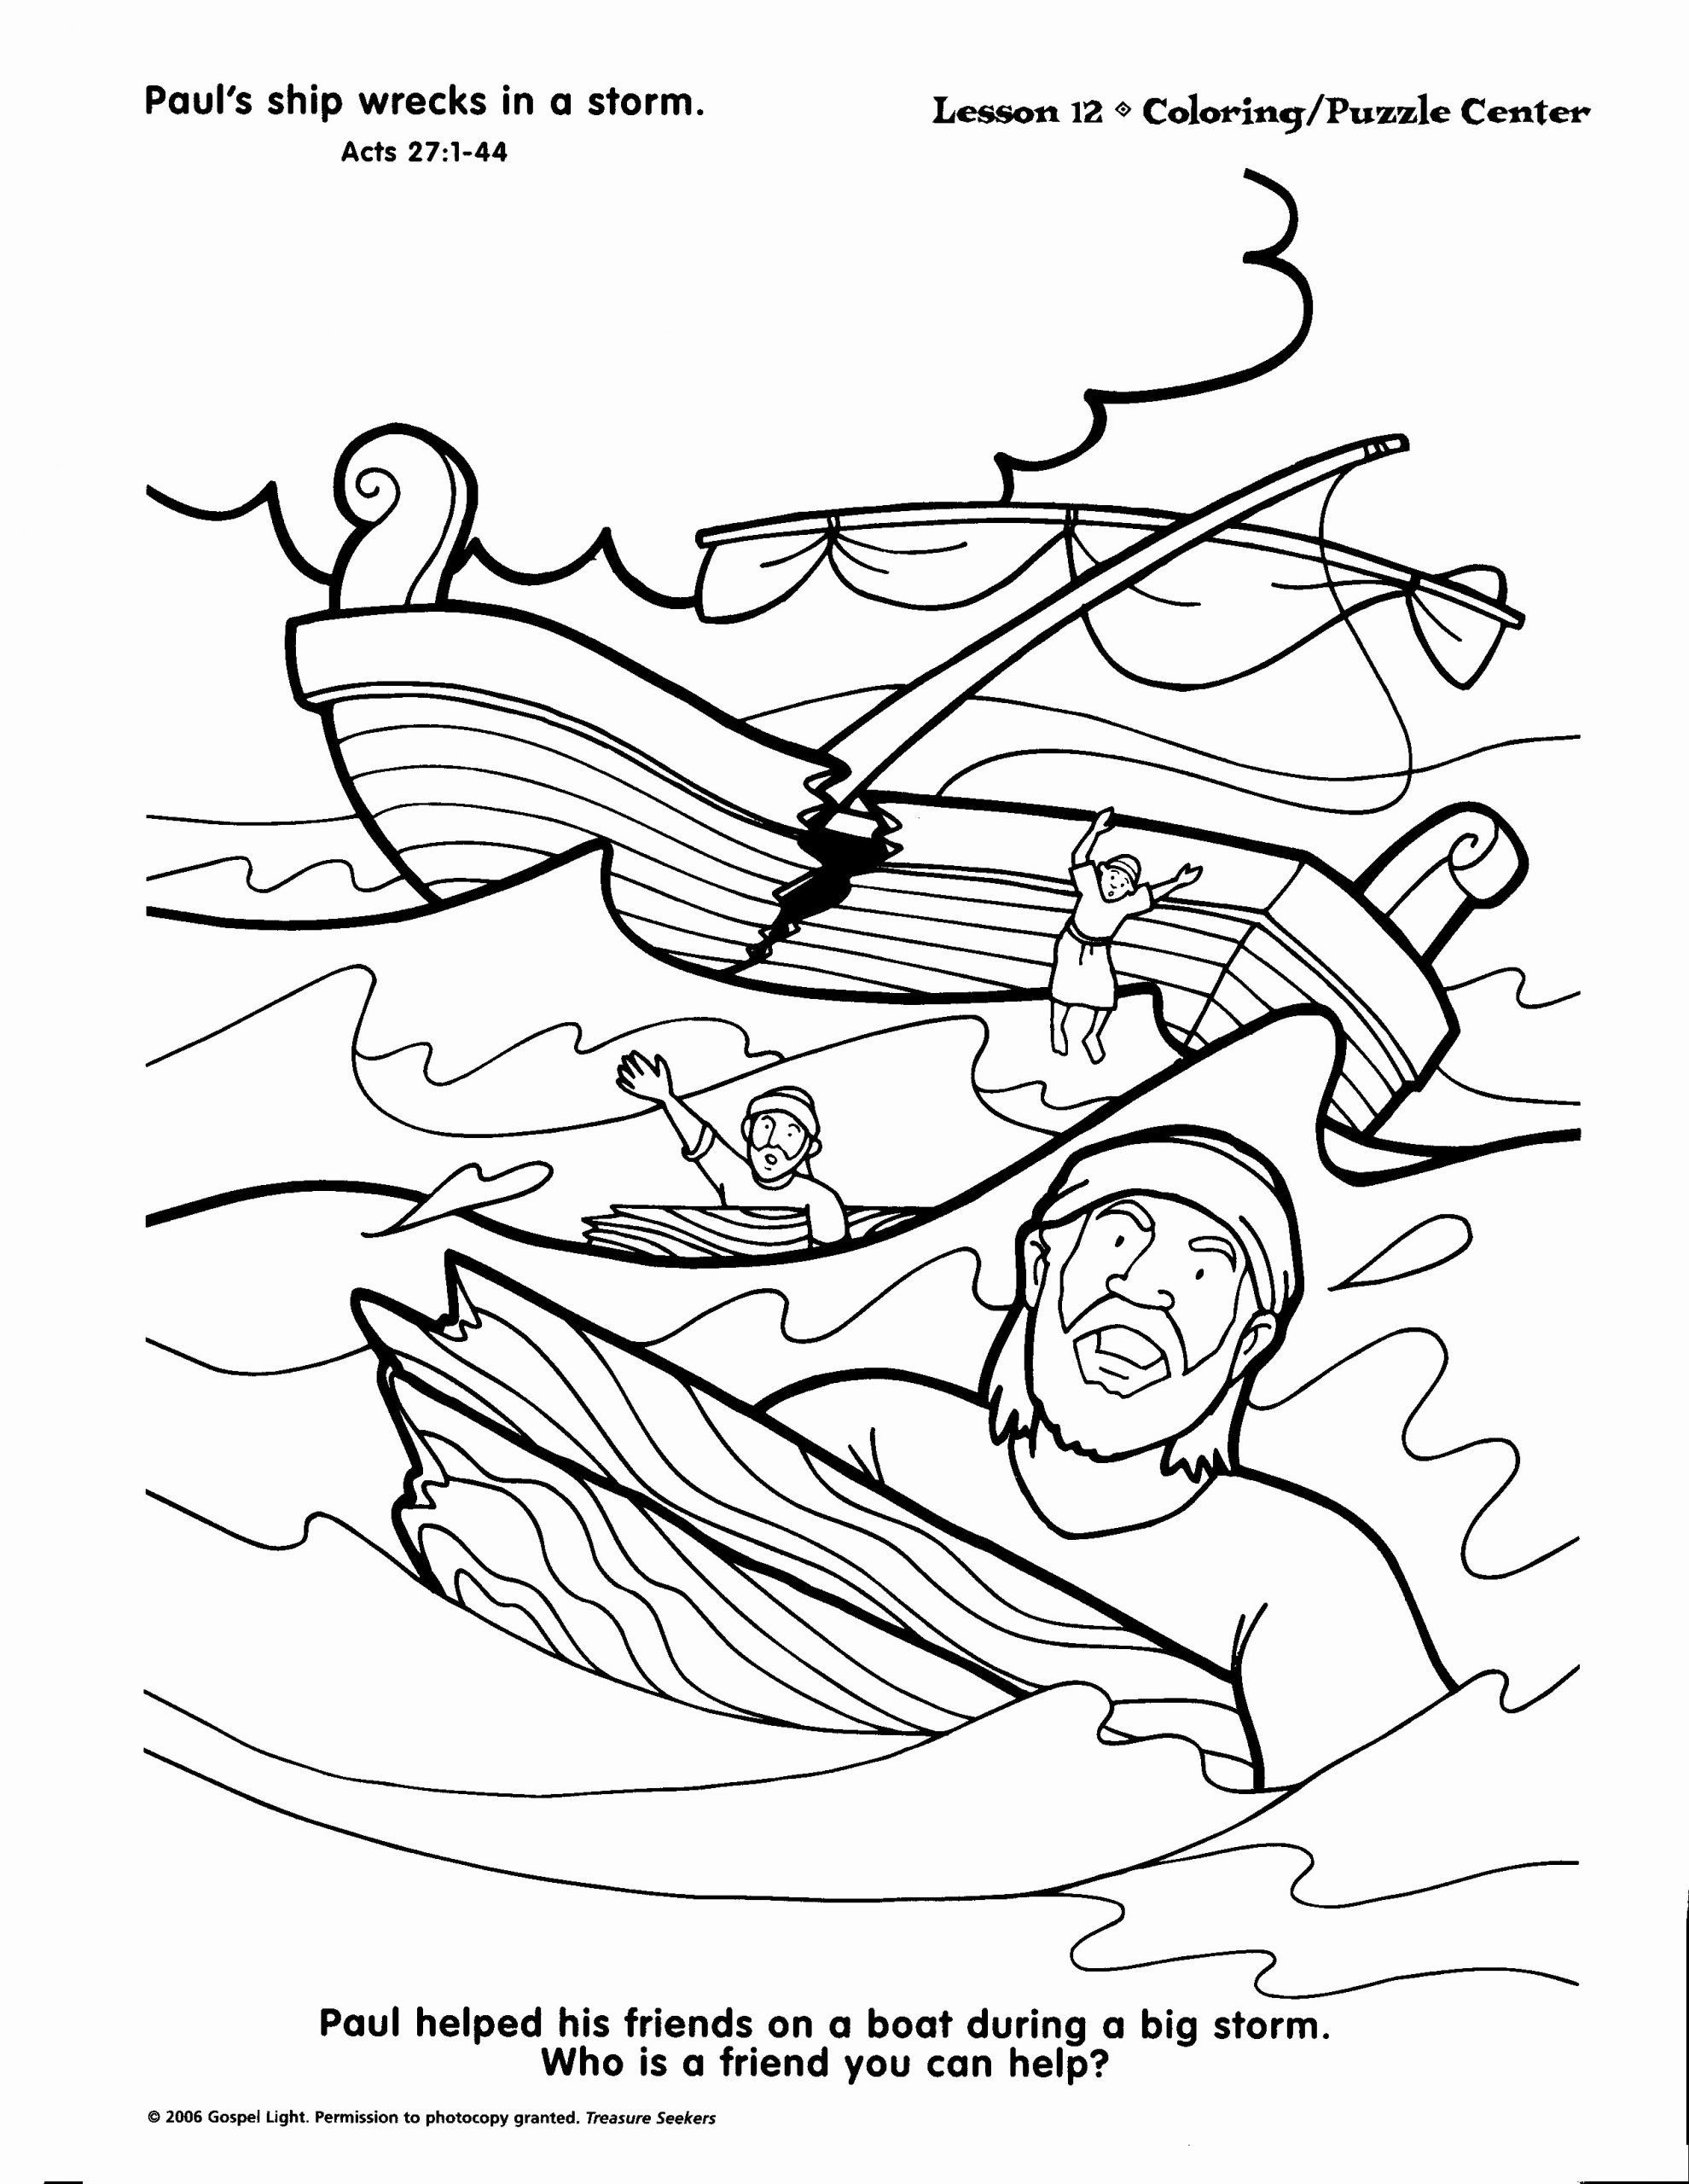 Paul's First Missionary Journey Coloring Page : paul's, first, missionary, journey, coloring, Paul's, First, Missionary, Journey, Coloring, Unique, Paulus, Leidt, Schipbreuk, Sunday, School, Pages,, Bible